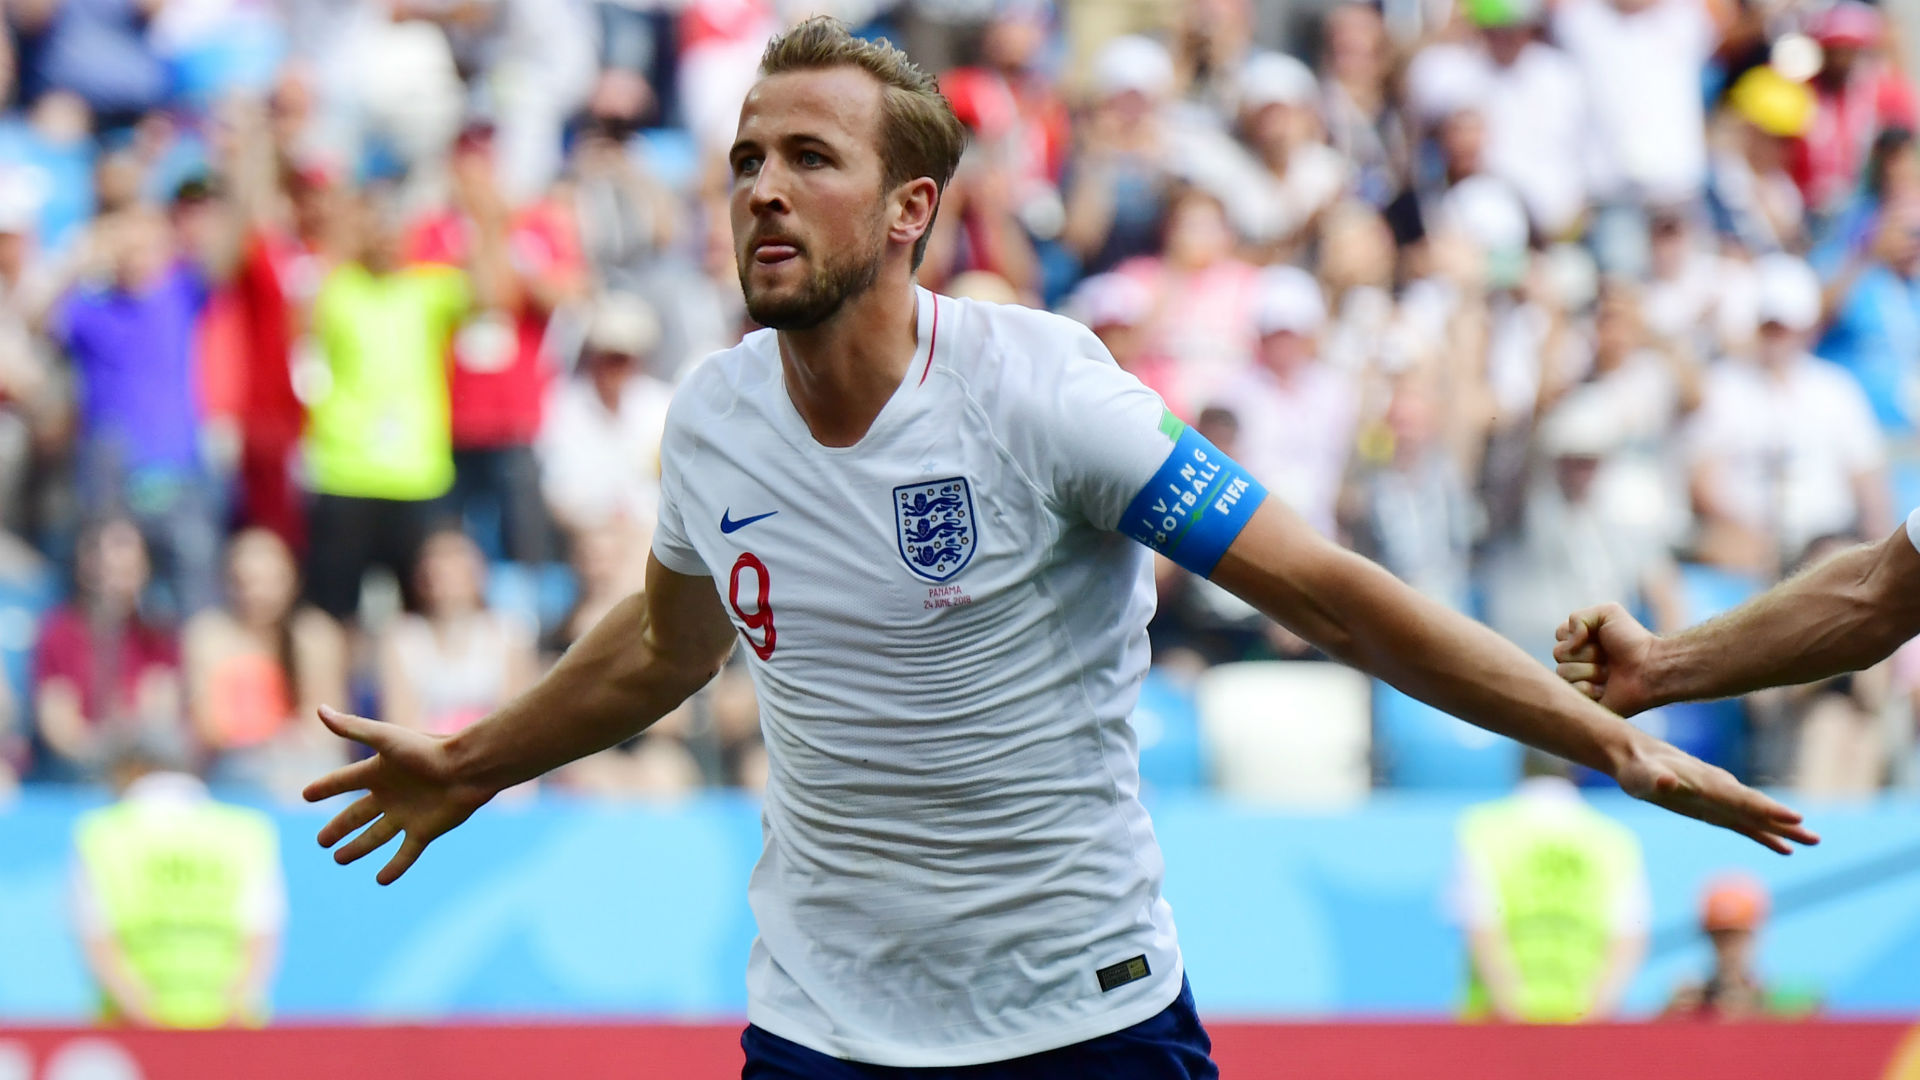 Federation Internationale de Football Association 2018: 'Strange match' awaits England and Belgium